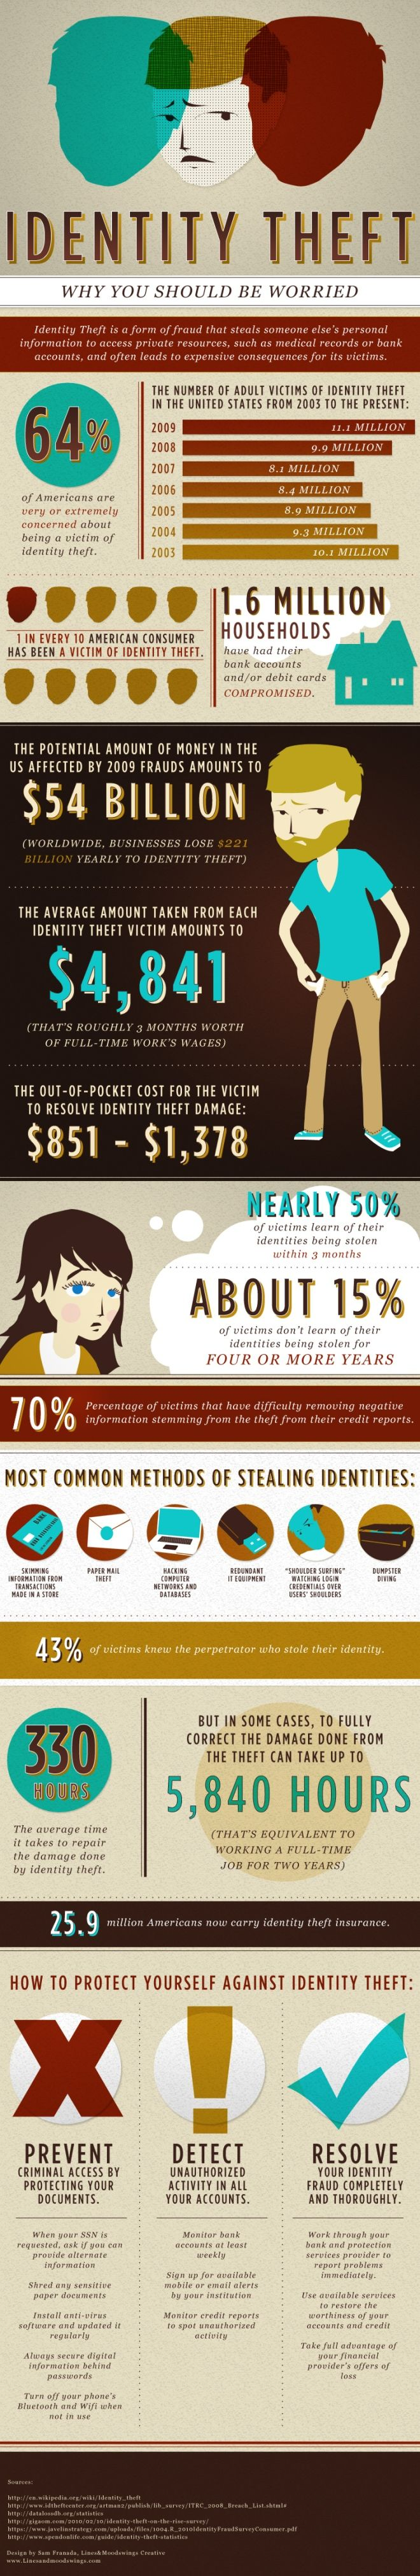 How Much Does Identity Theft Cost? [INFOGRAPHIC]